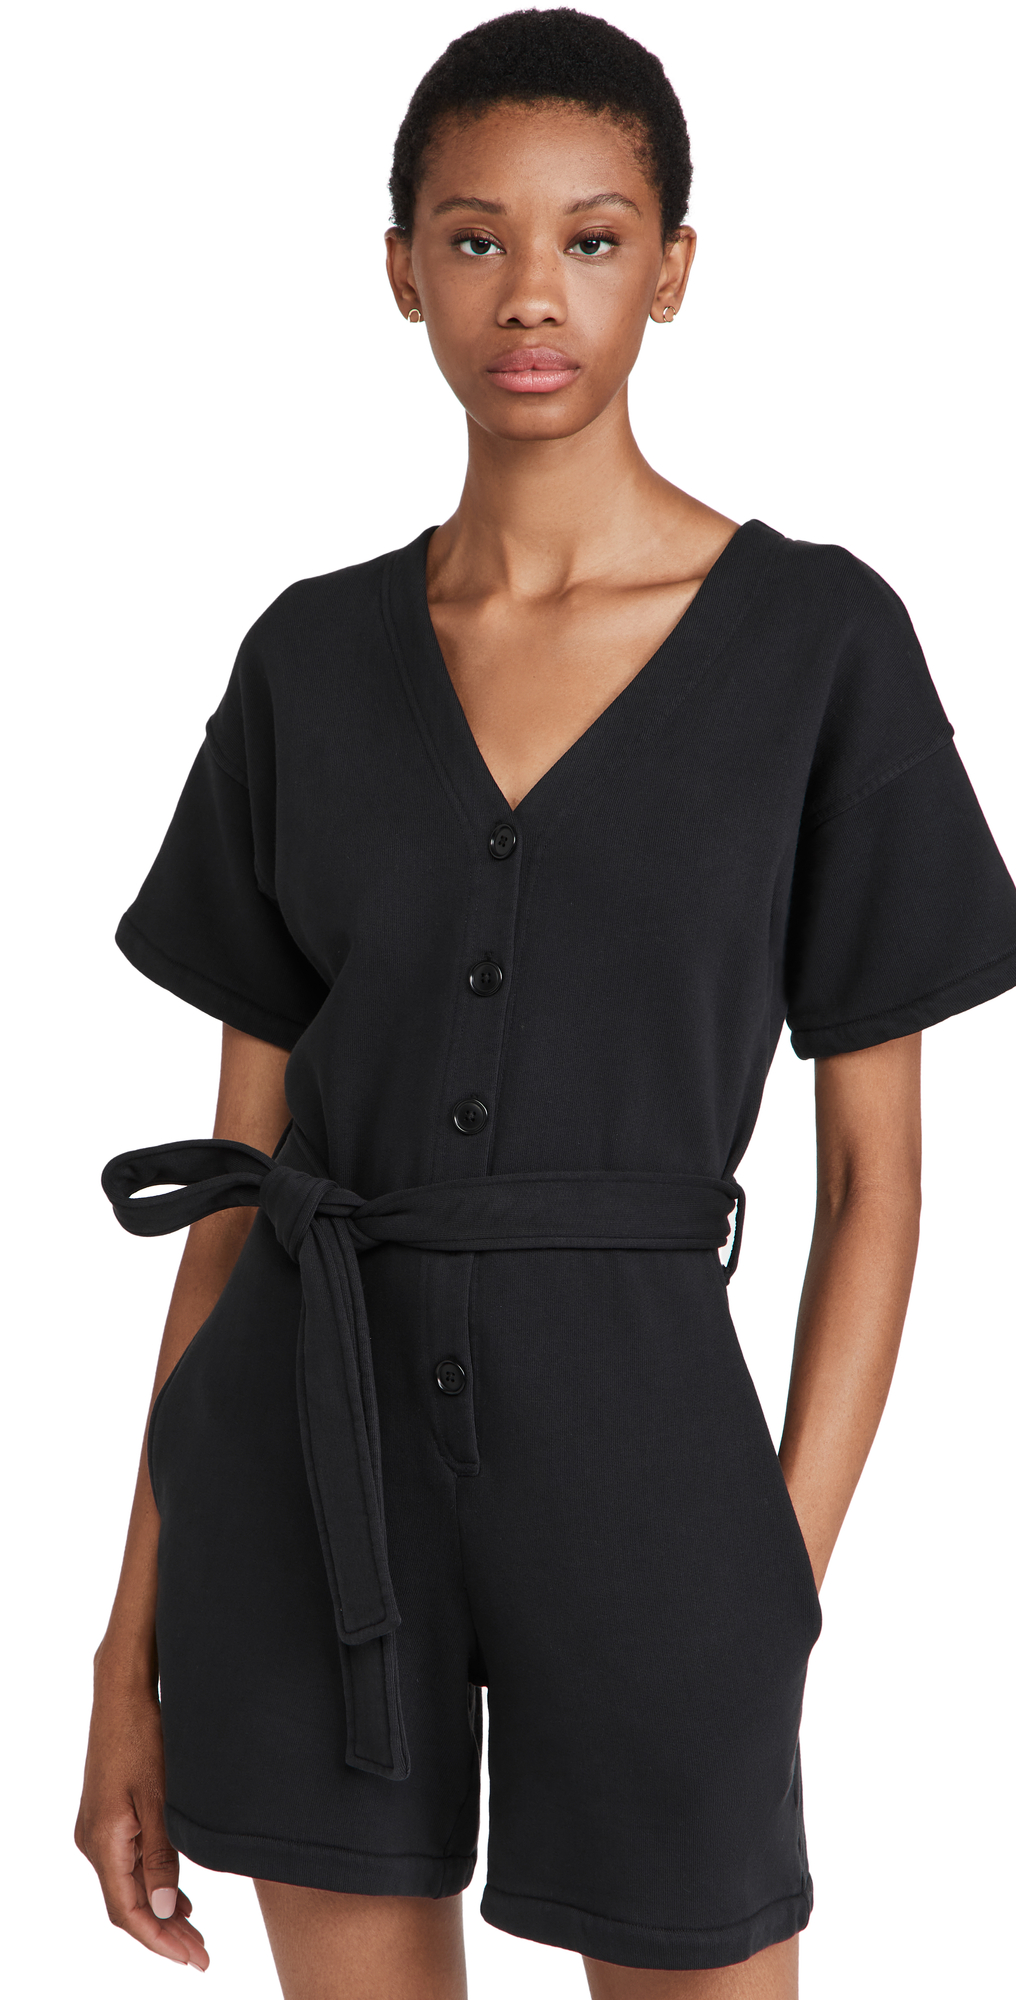 French Terry Romper